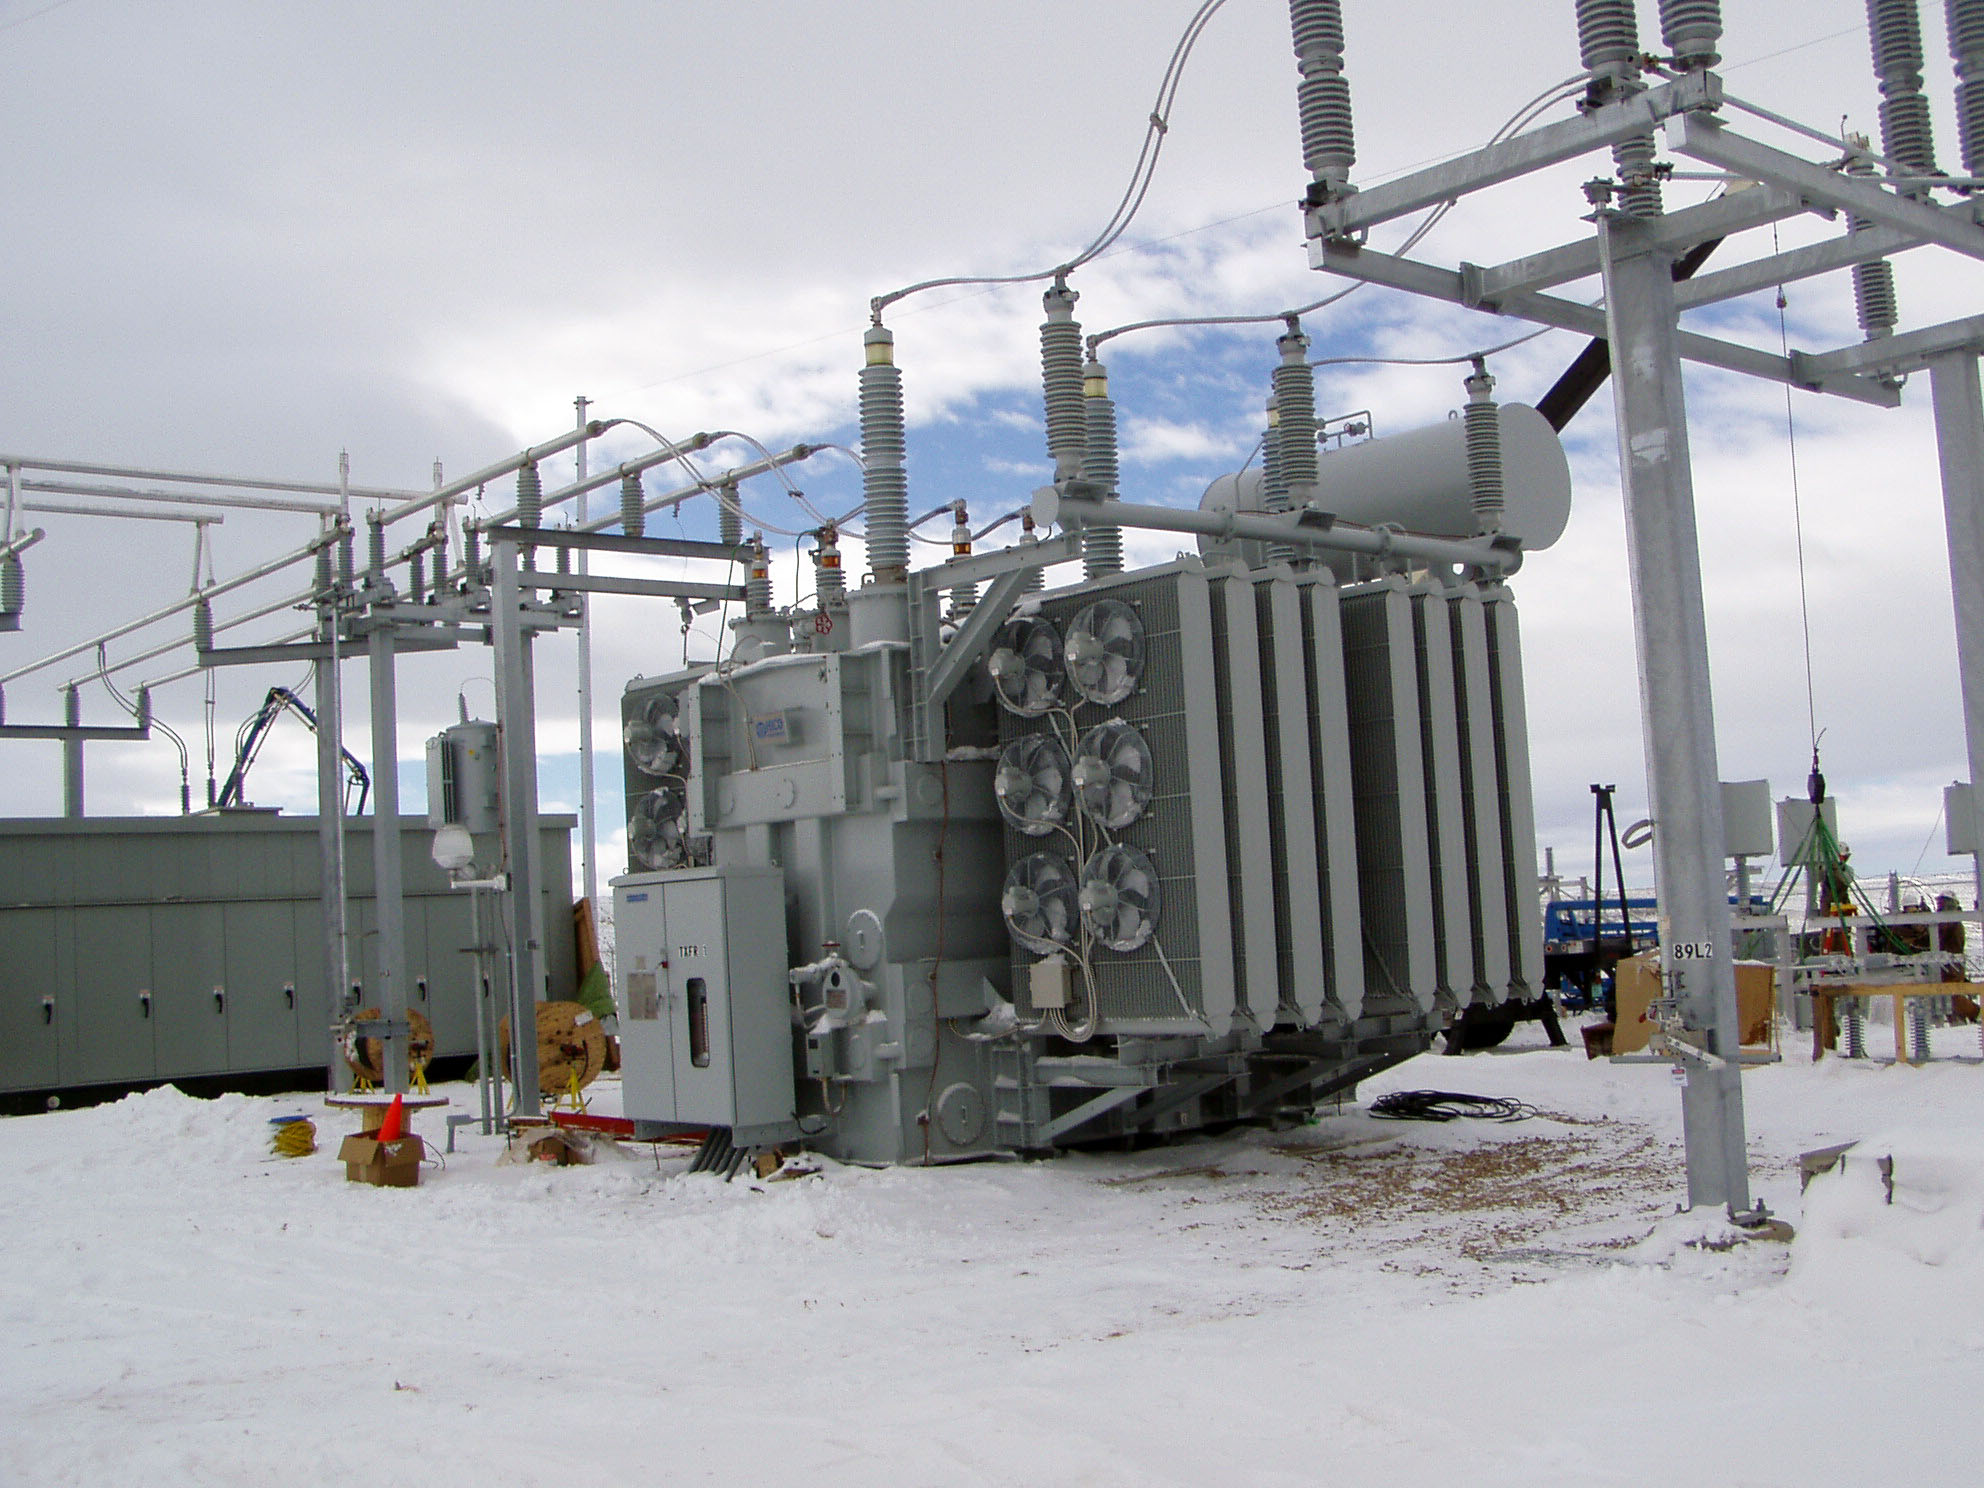 Hinshaw Substation